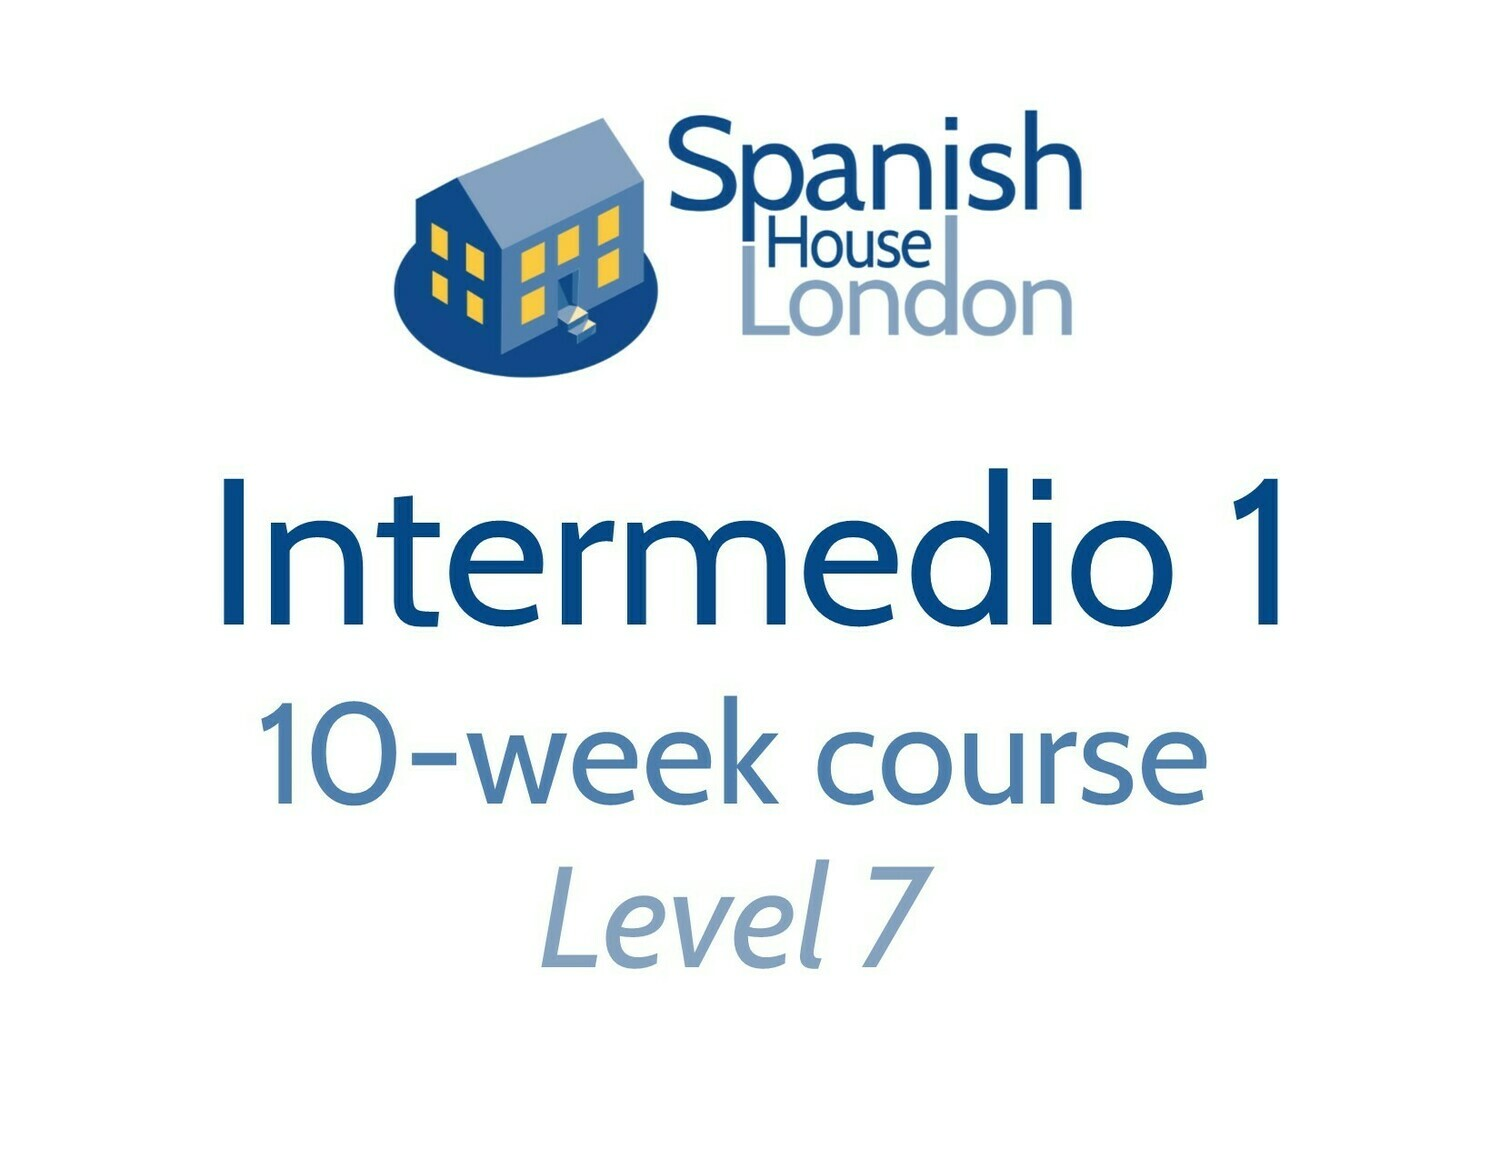 Intermedio 1 Course starting on 18th September at 7.30pm in Euston